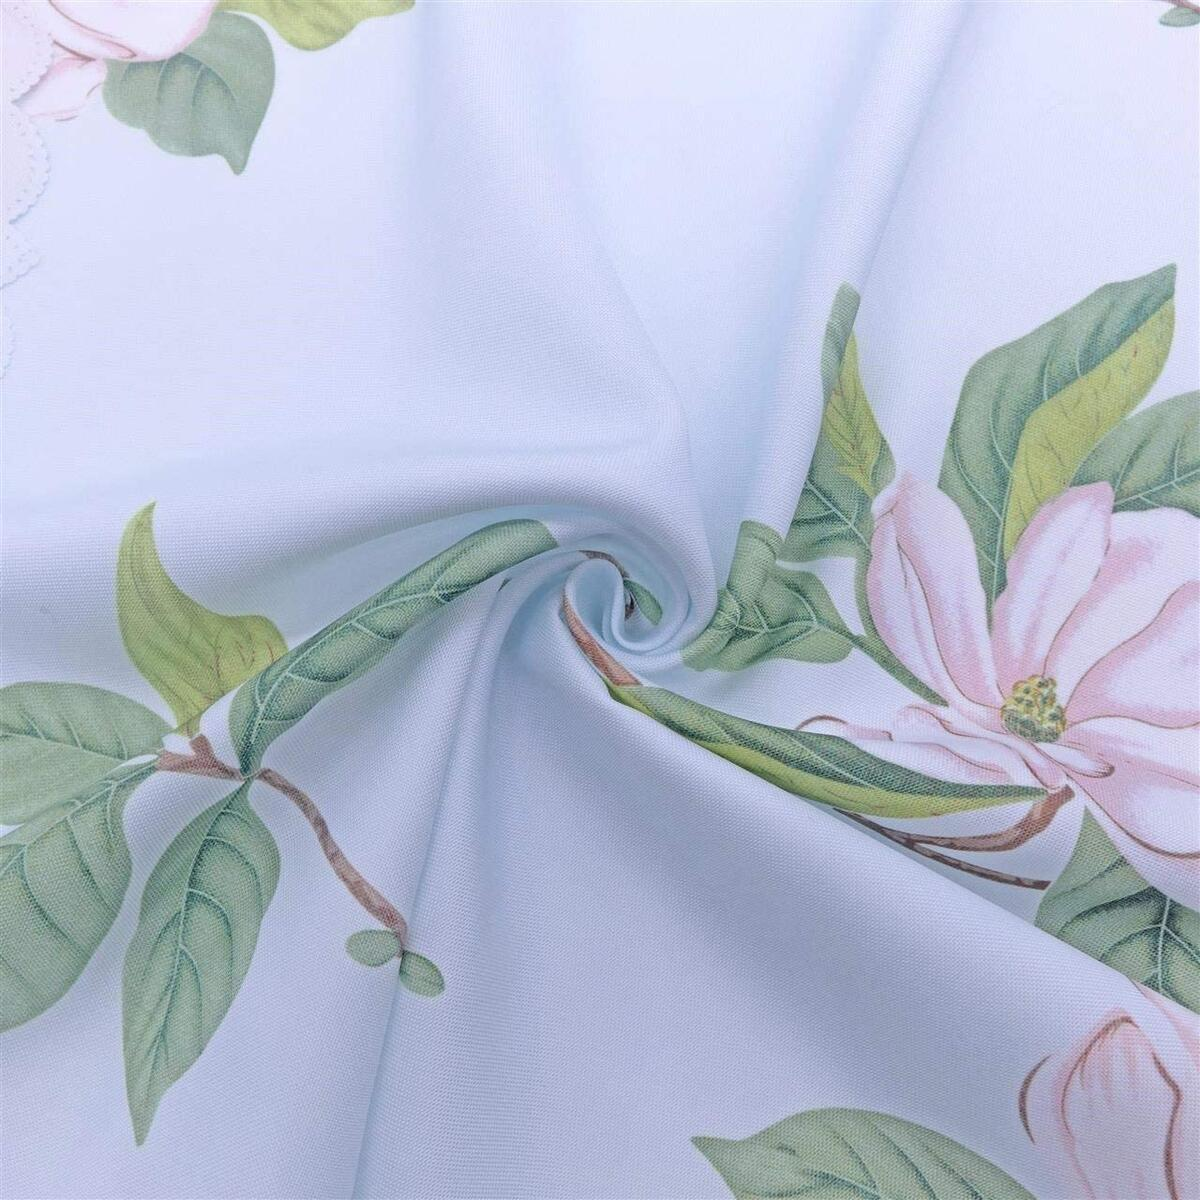 Round Floral Tablecloth